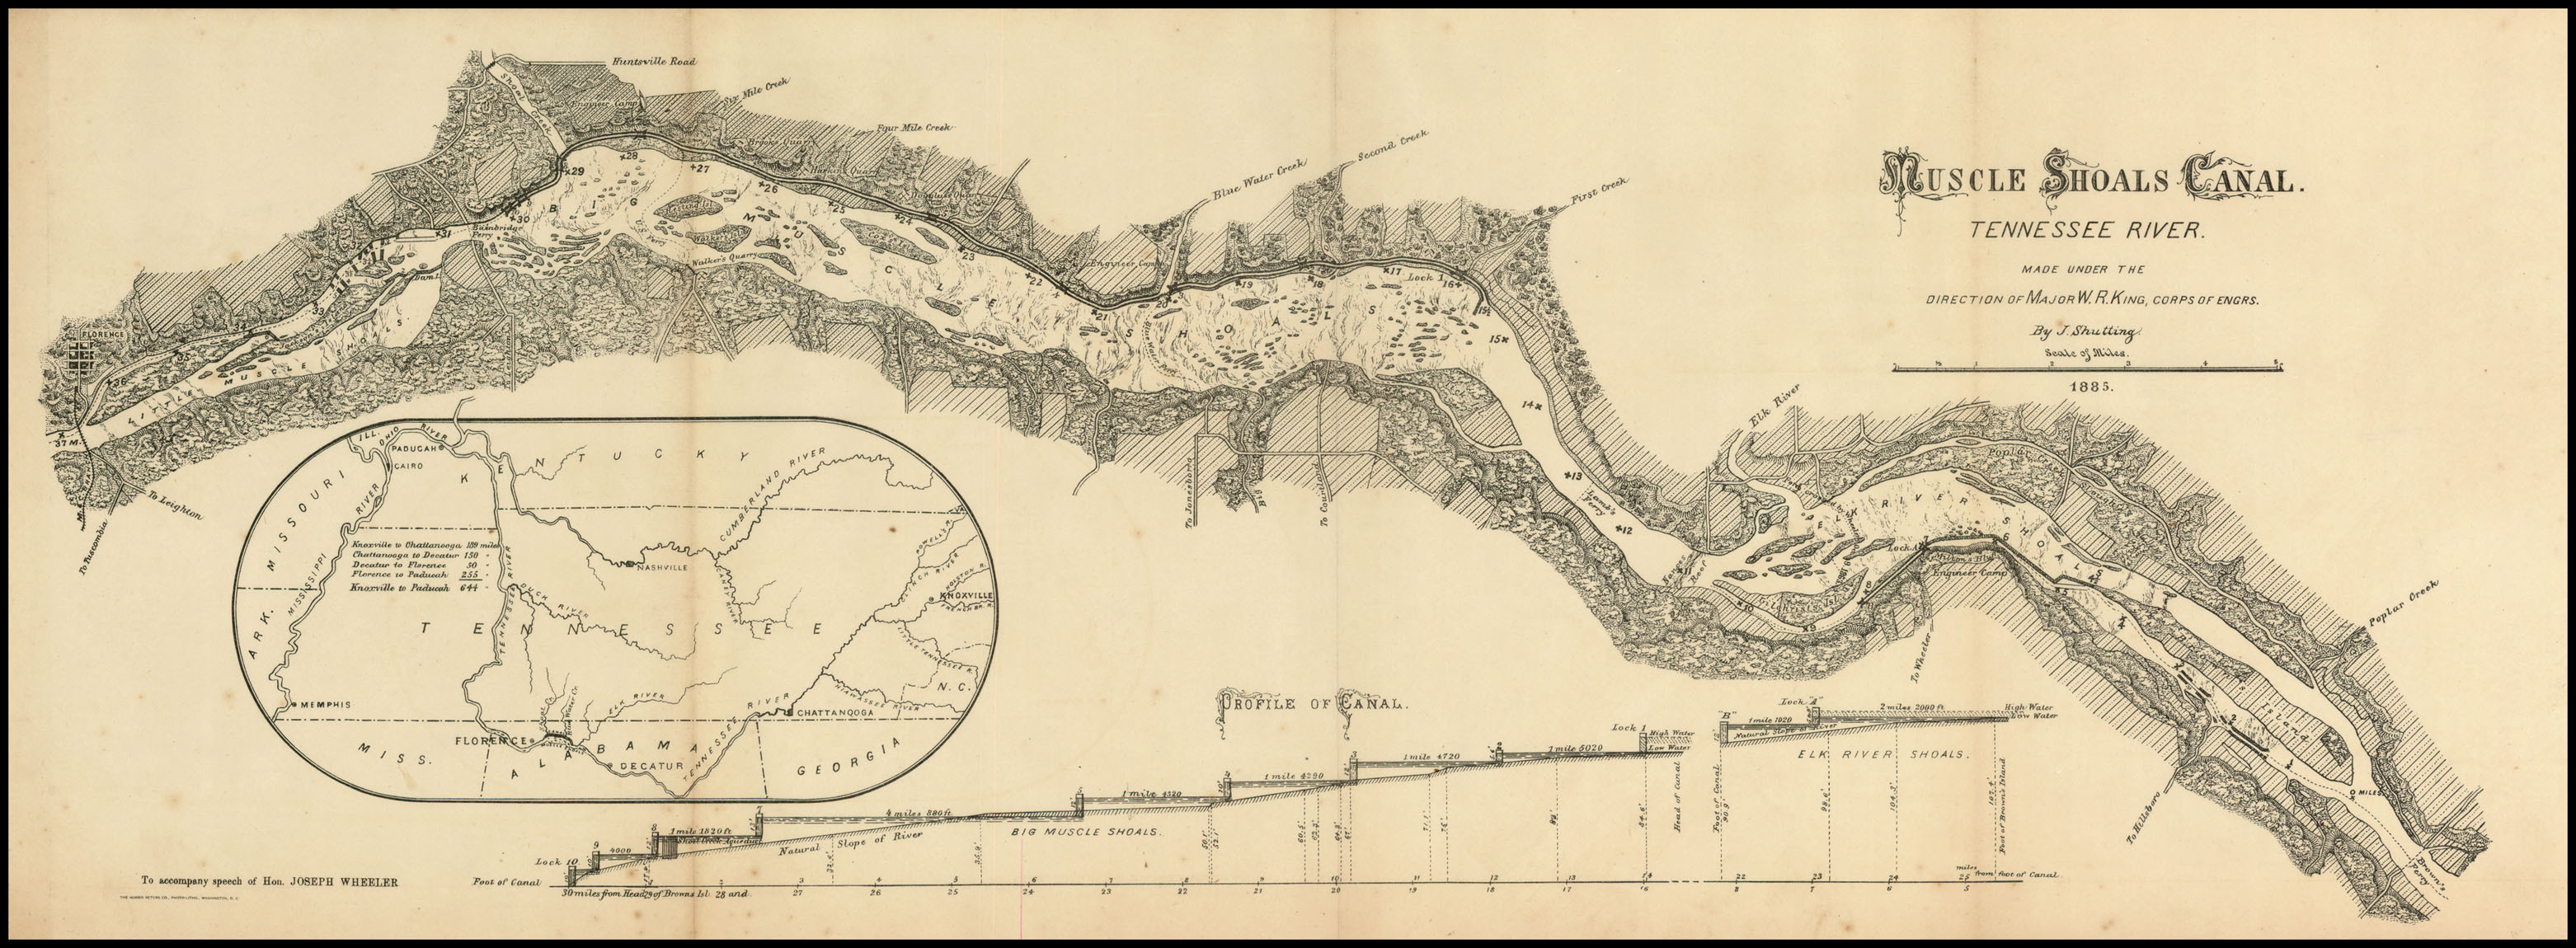 Muscle Shoals Canal  TRVA  Tennessee River Valley